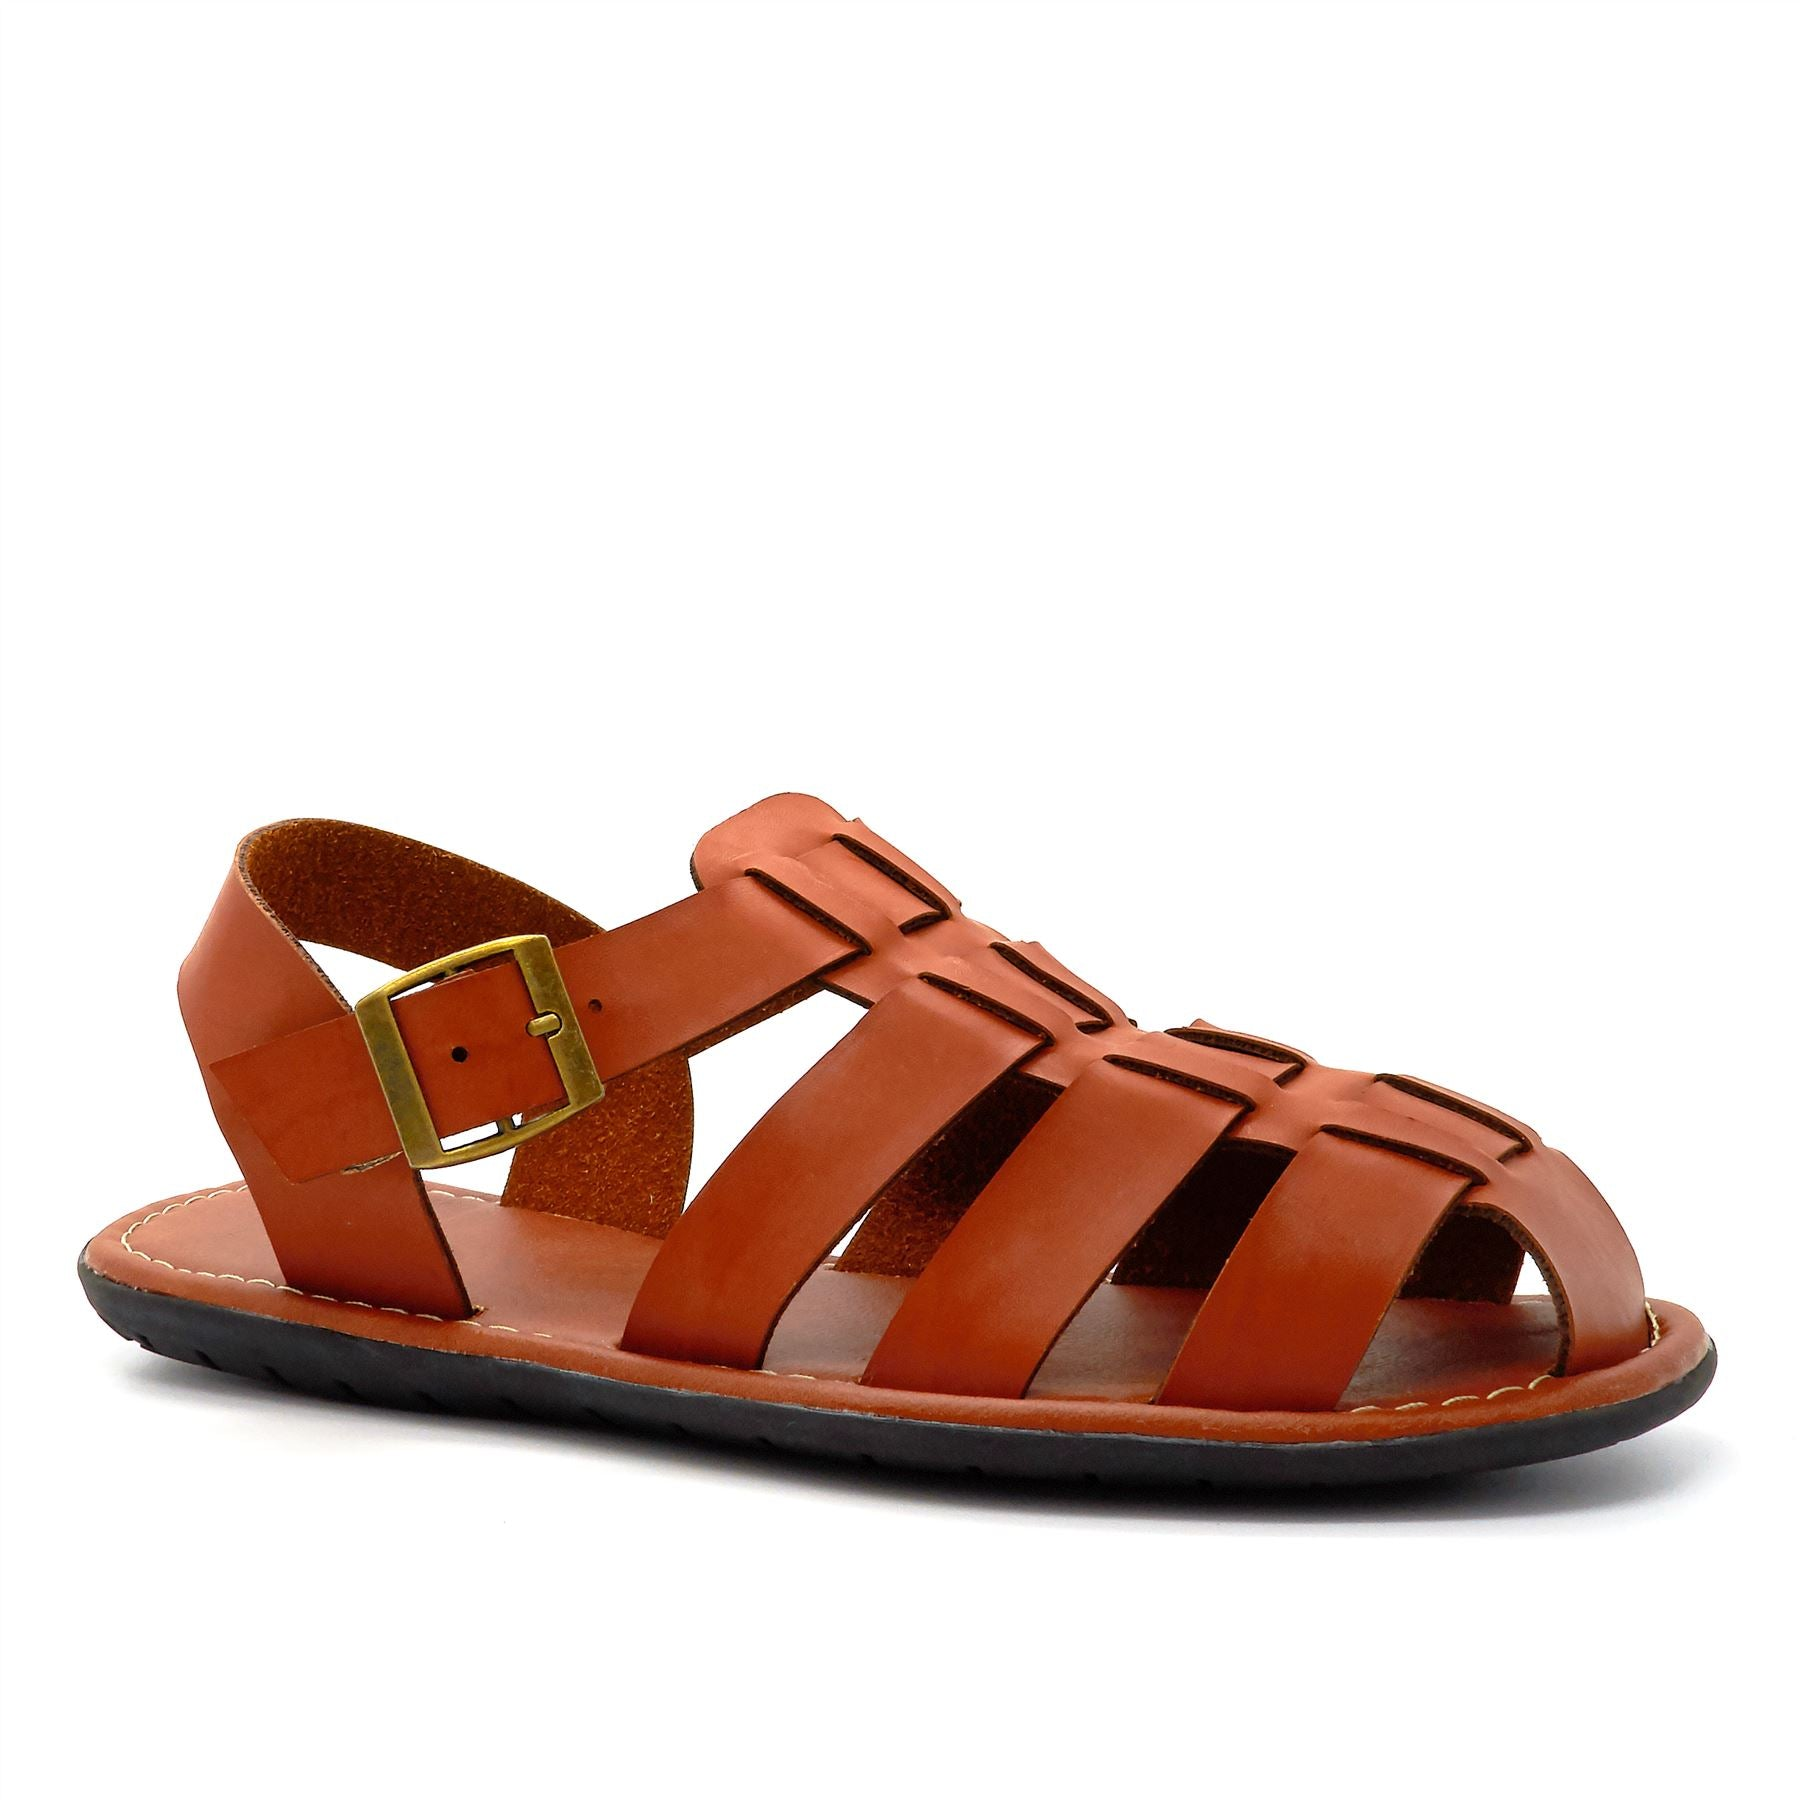 Tan Leather Look Fisherman Sandals